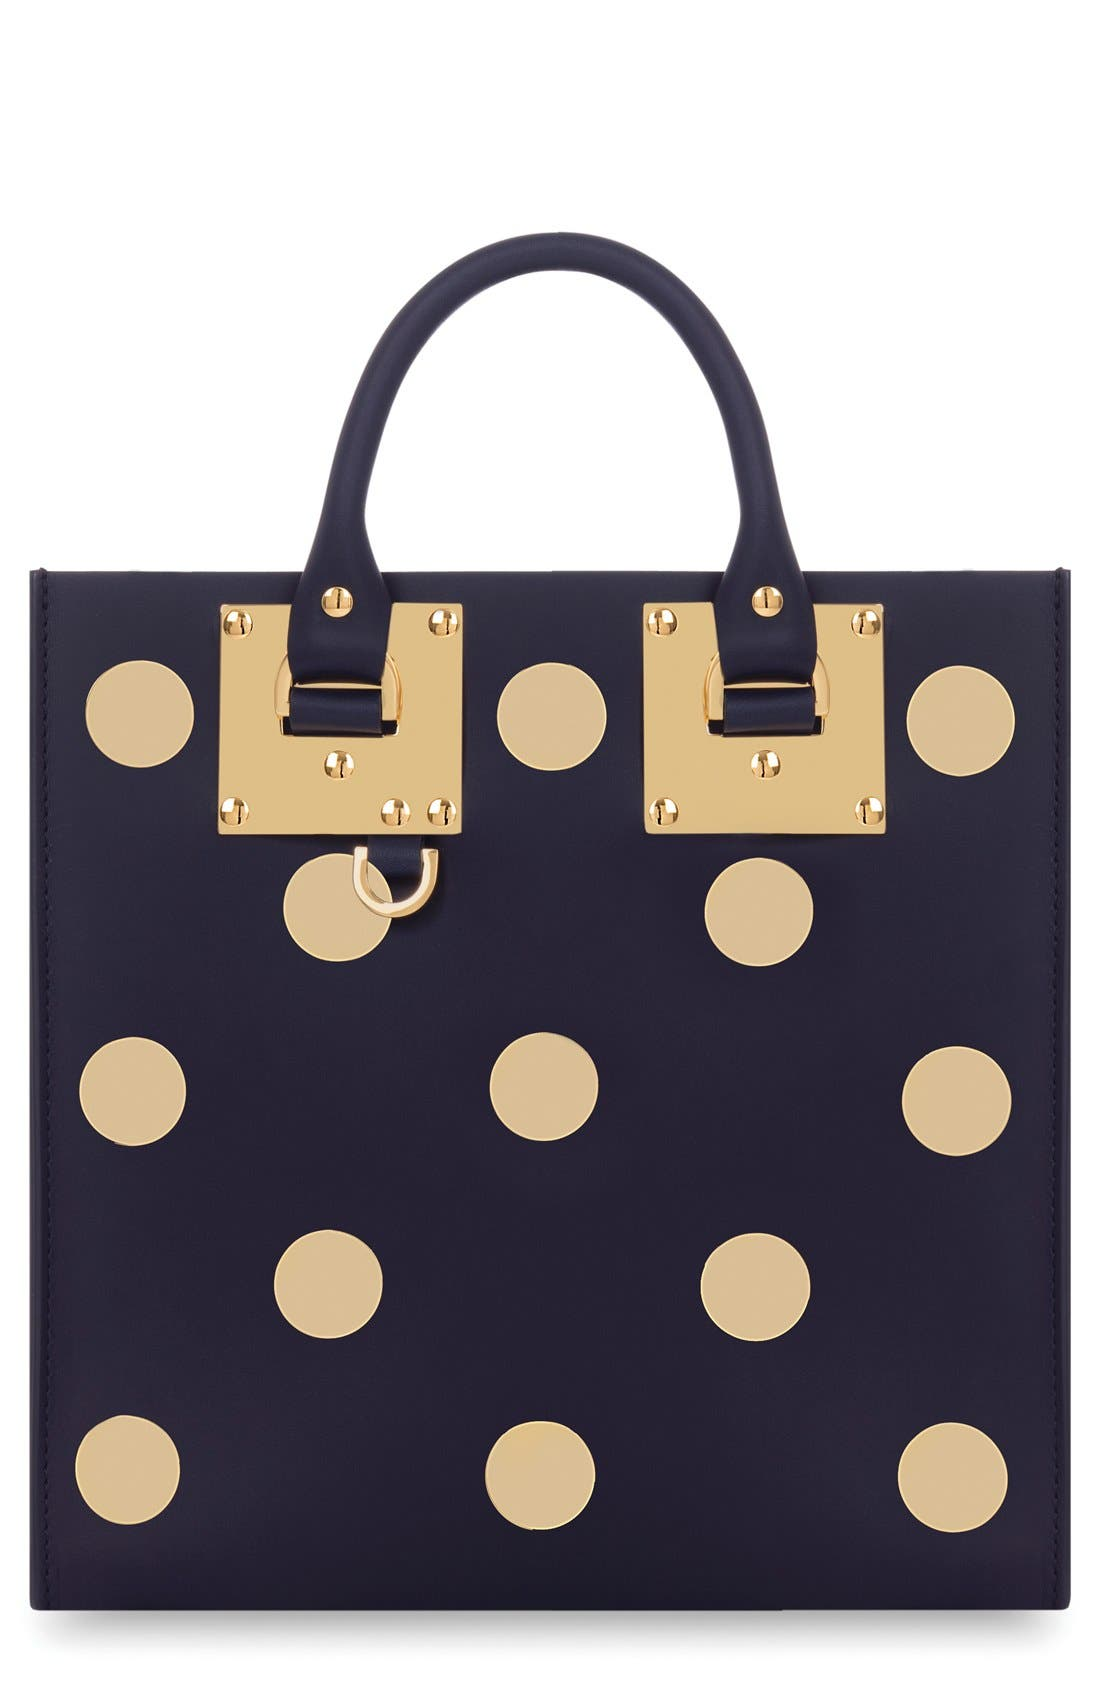 Alternate Image 1 Selected - Sophie Hulme 'Albion' Polka Dot Studded Leather Crossbody Bag